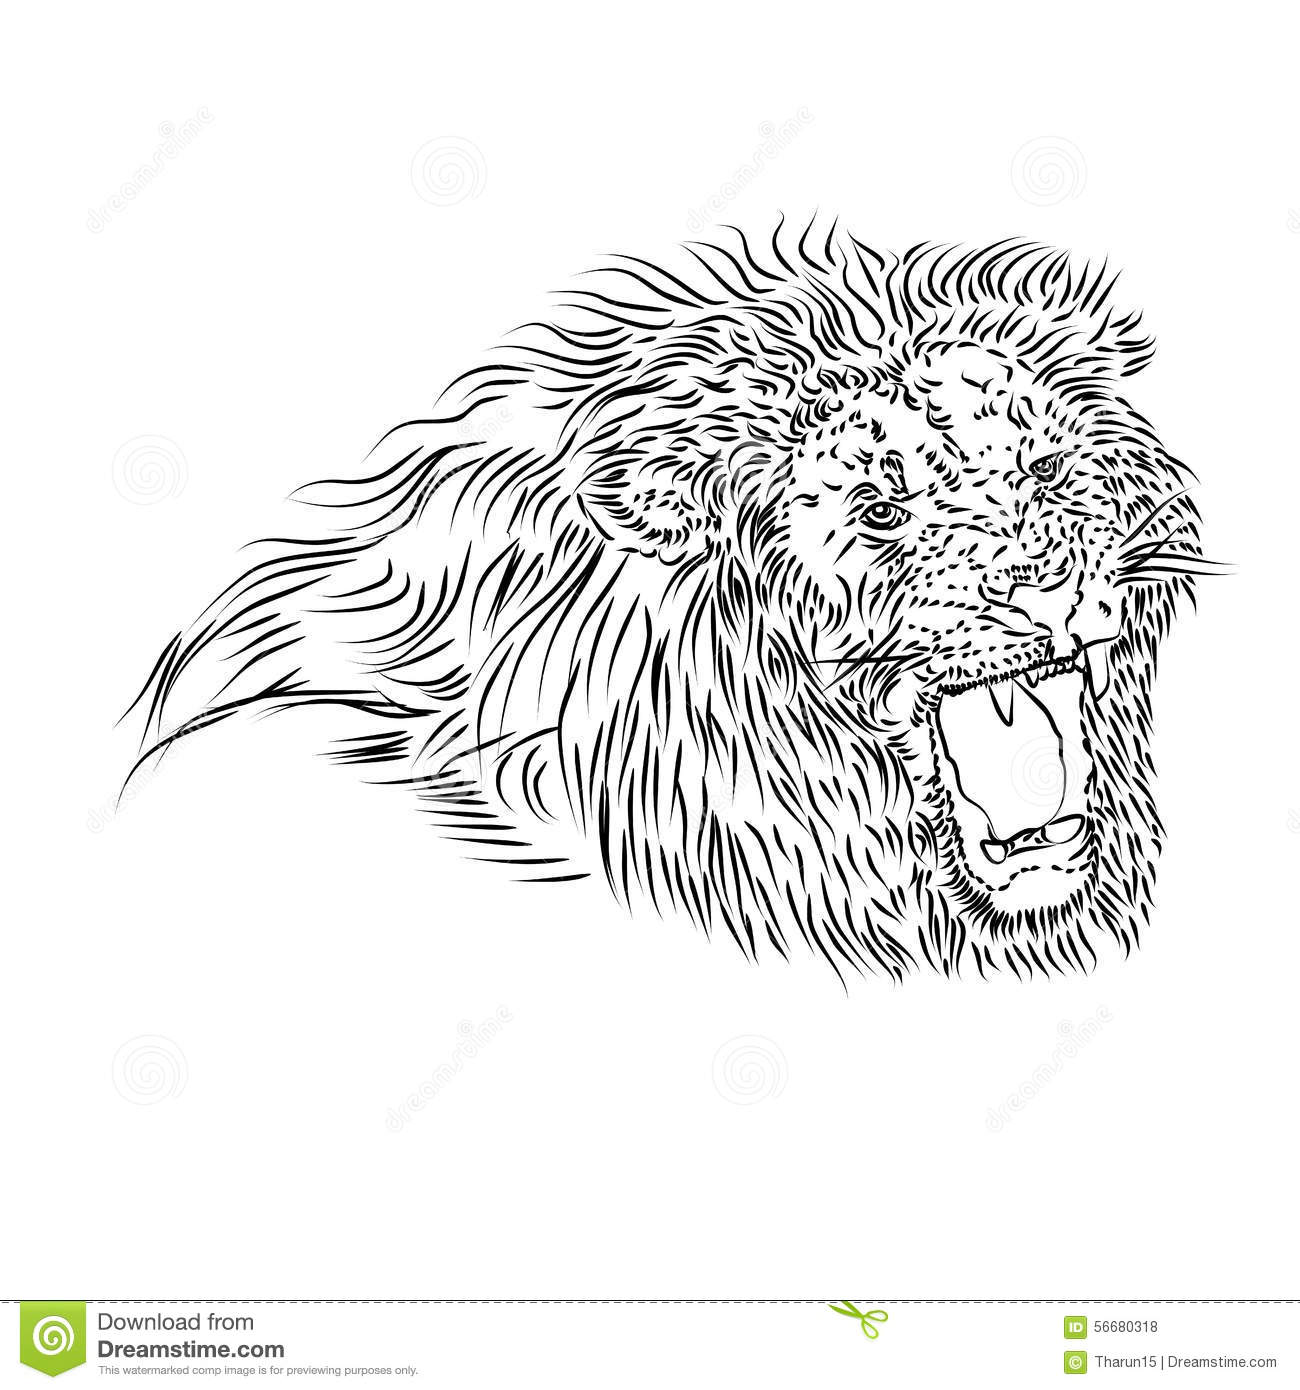 Line Drawing Of A Roaring Lion Stock Illustration ... - photo#32